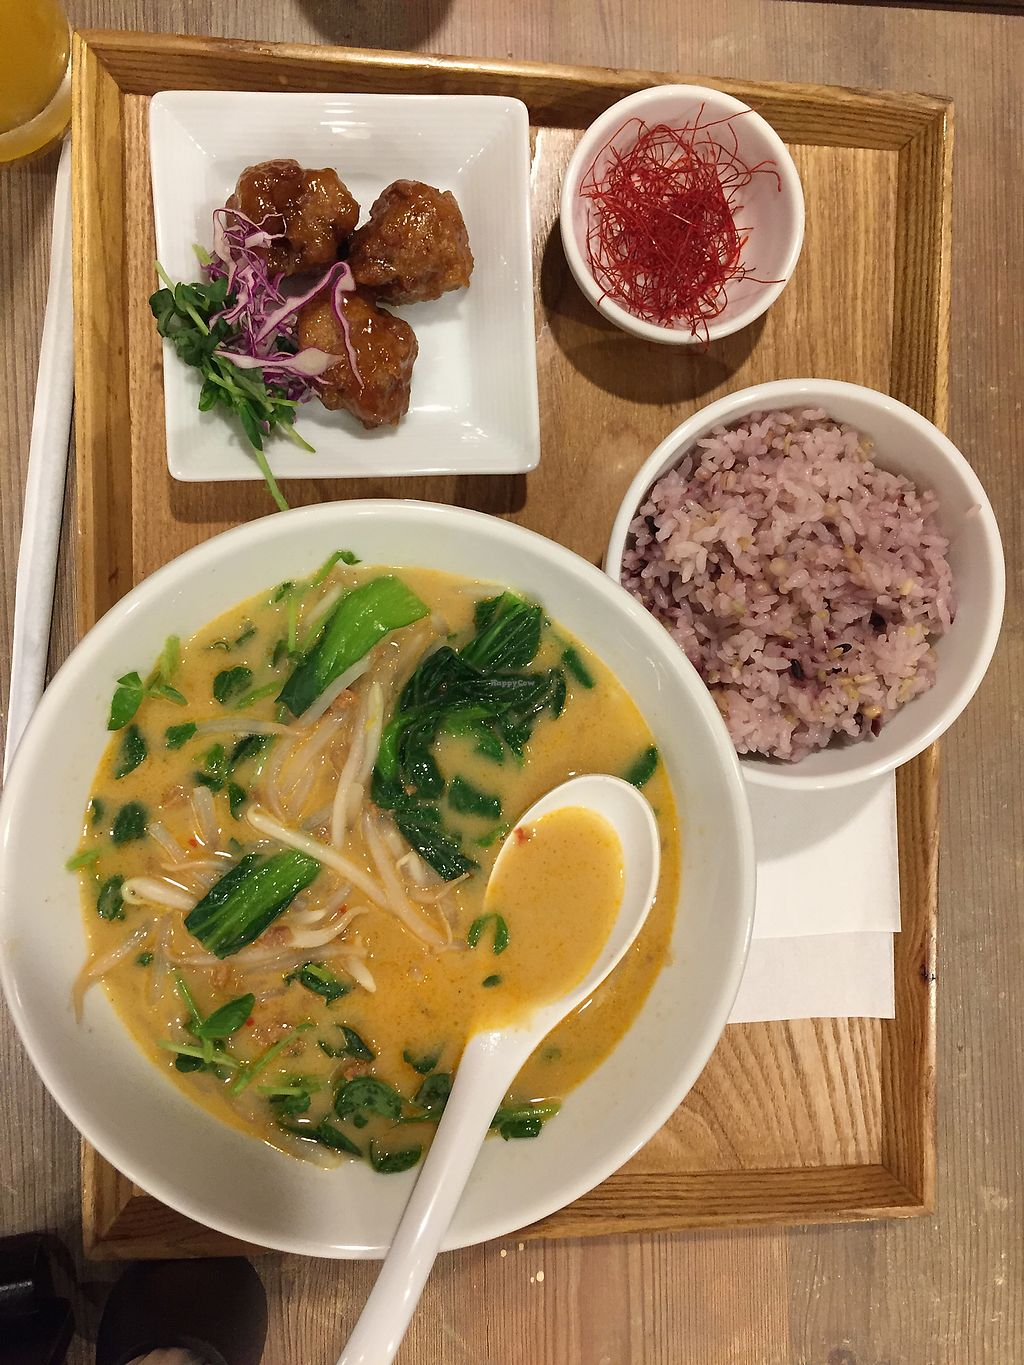 """Photo of T's Tantan - Ueno  by <a href=""""/members/profile/ChiamLongThiam"""">ChiamLongThiam</a> <br/>Set meal 3 <br/> March 22, 2018  - <a href='/contact/abuse/image/106436/374252'>Report</a>"""